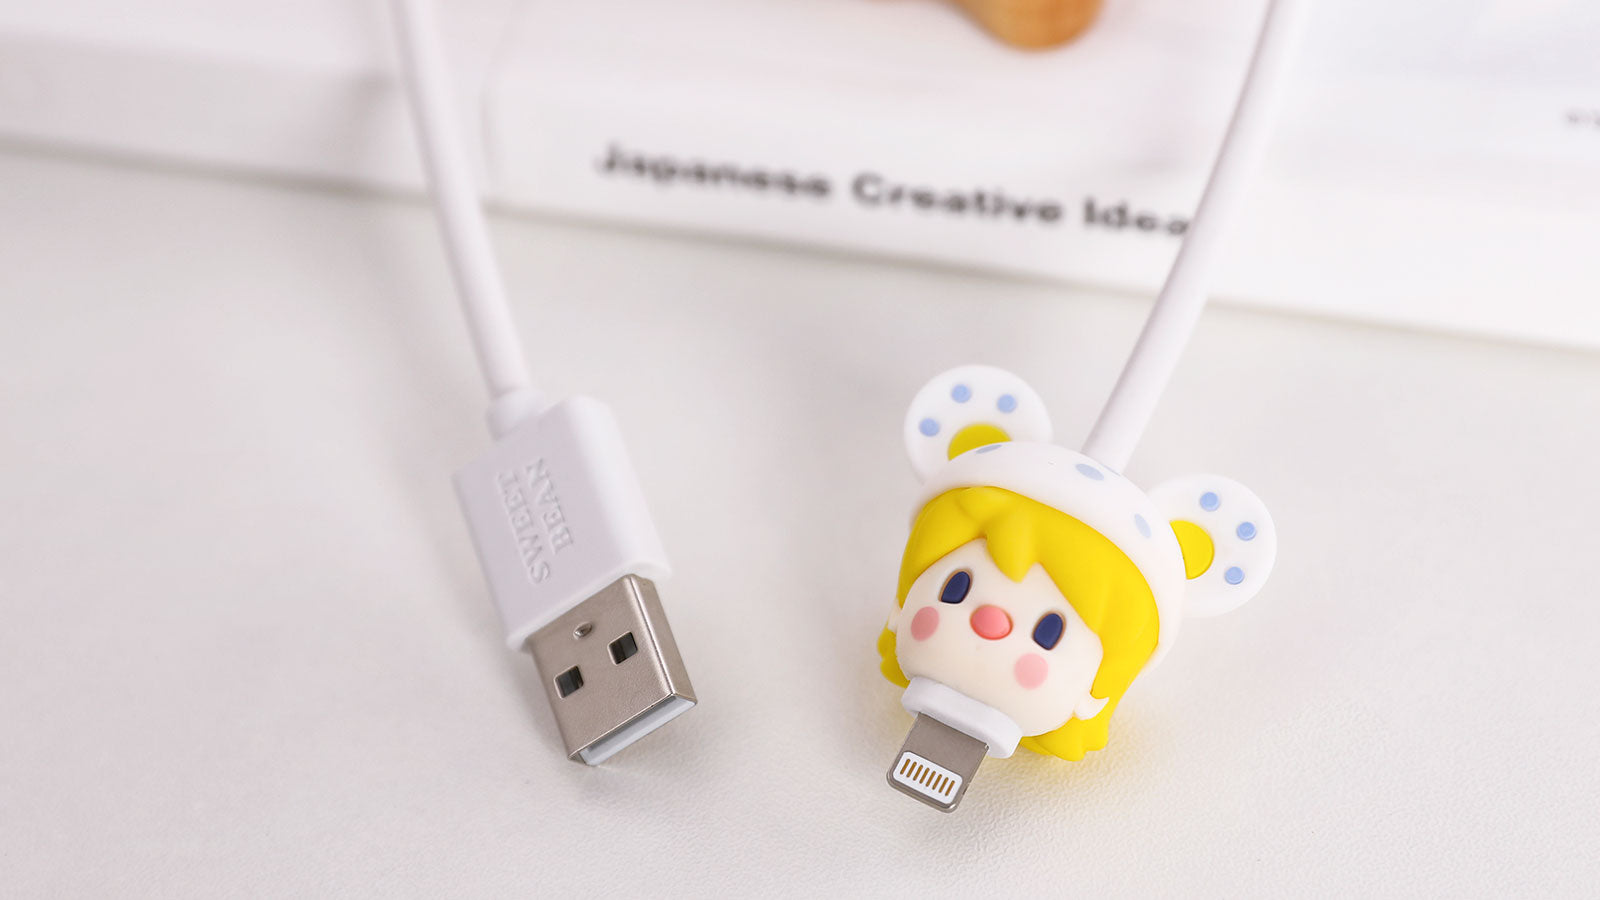 https://cdn.shopify.com/s/files/1/0339/7091/3412/files/2-1_POP_MART_Sweet_Bean_Animal_Babies_USB_Cable.jpg?v=1619680815